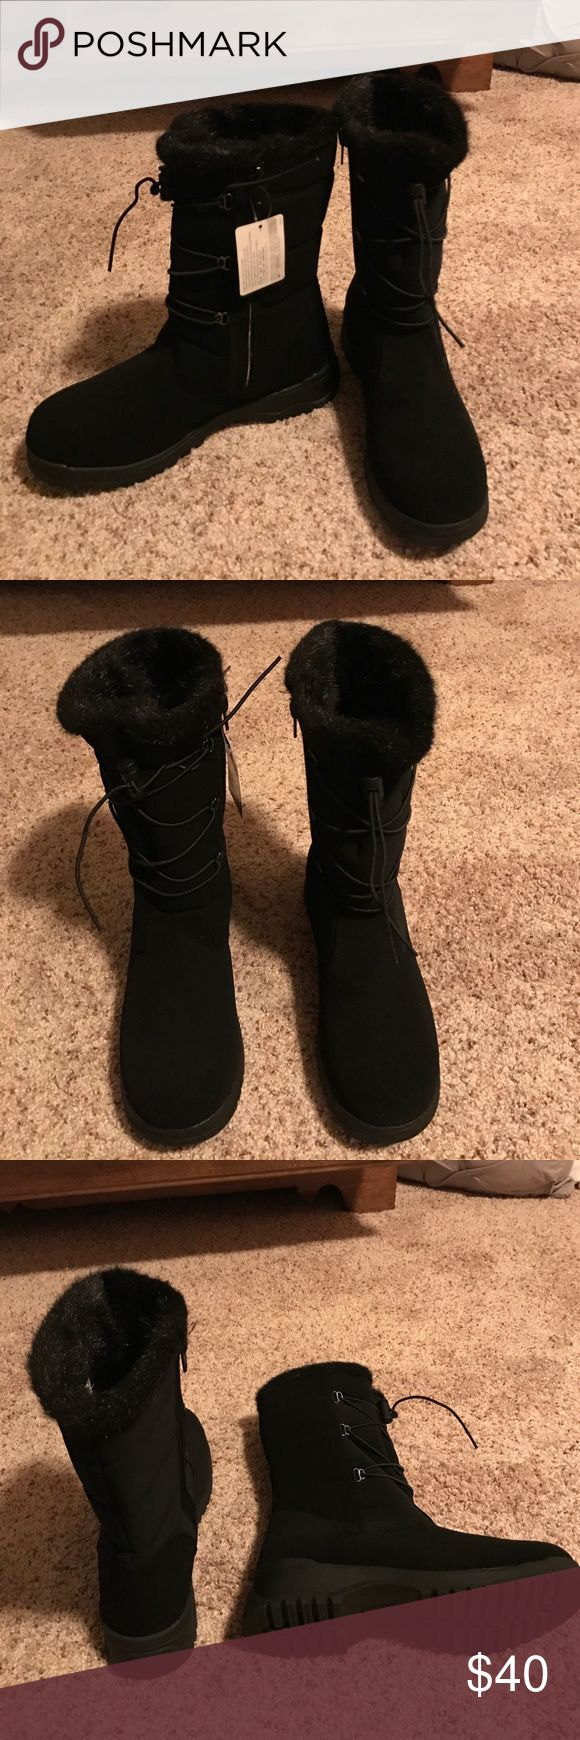 Boots Tundra Boots.  NWT, black, size 8, very comfortable and warm.  Purchased them on sale for $50.  Asking $40 or best offer.  Would look great with leggings or skinny jeans.  Great for walking around in the city on a brisk day. I'm normally a 7.5 and these fit perfect. Tundra Shoes Winter & Rain Boots